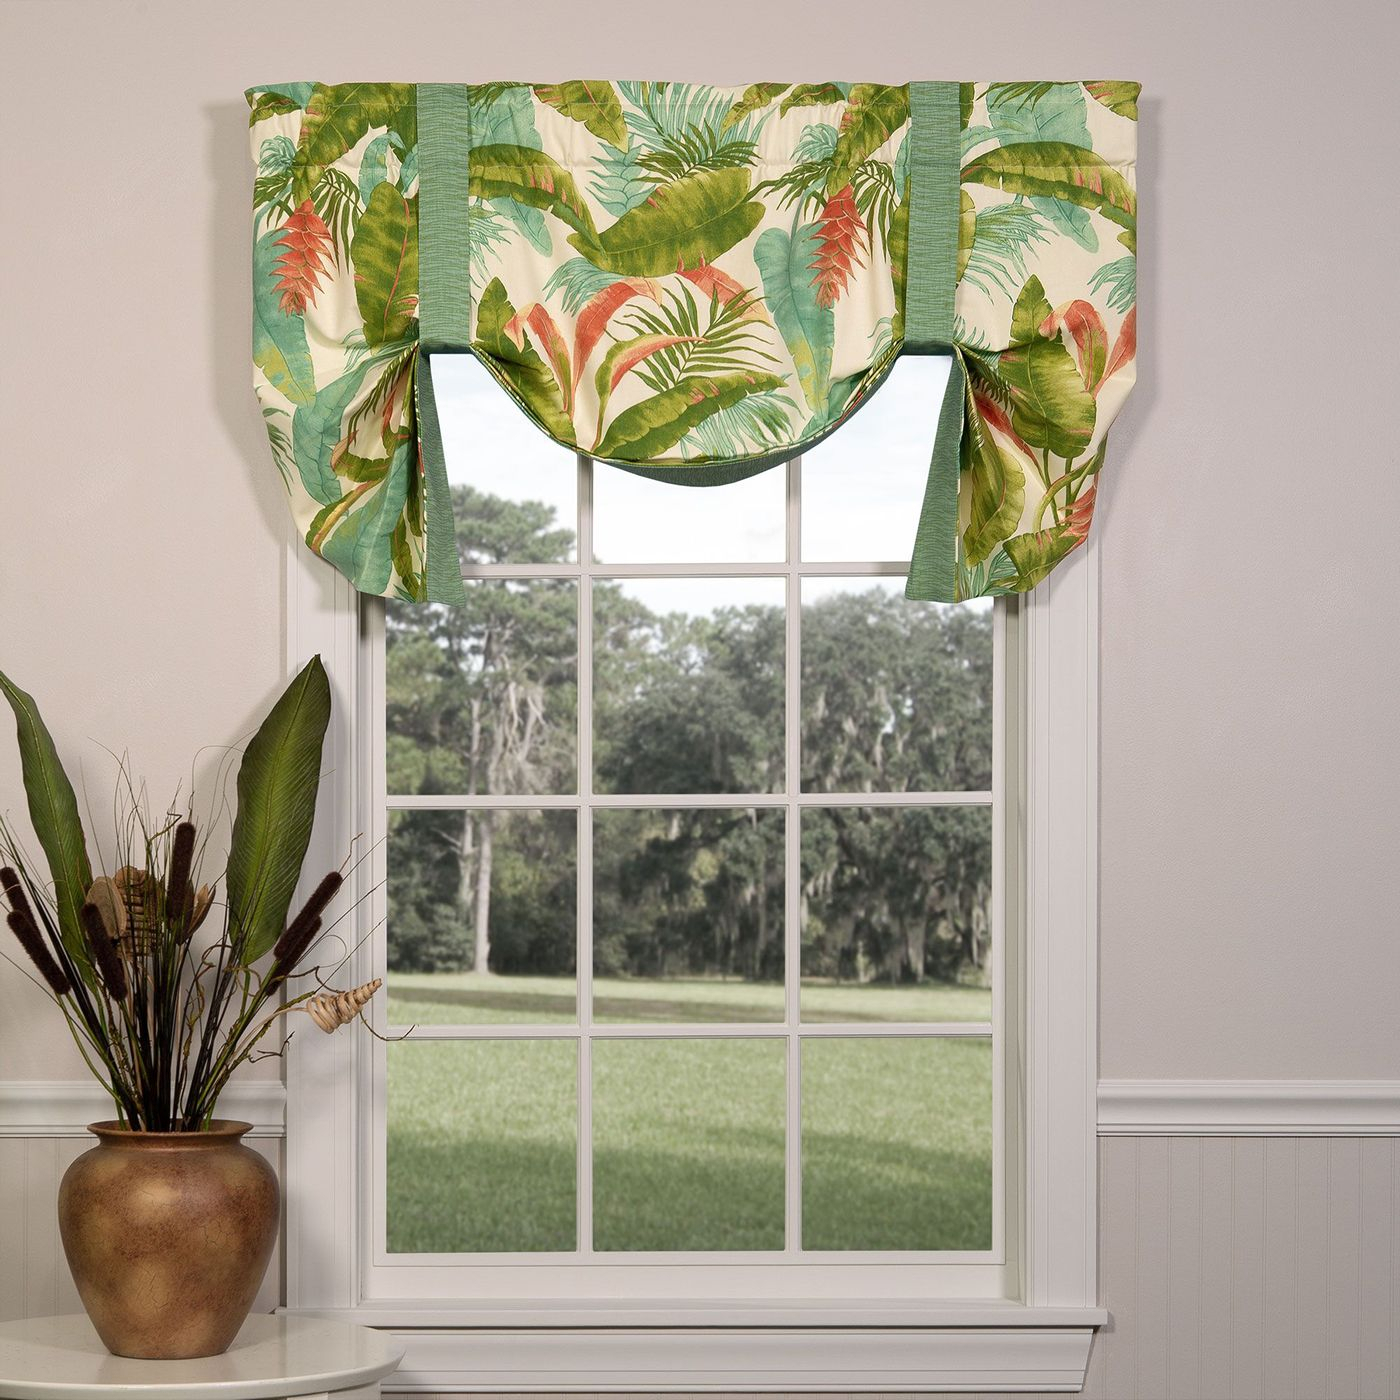 Tie Up Valances: Solid Colored, Patterned, Prints In Prescott Insulated Tie Up Window Shade (View 12 of 20)